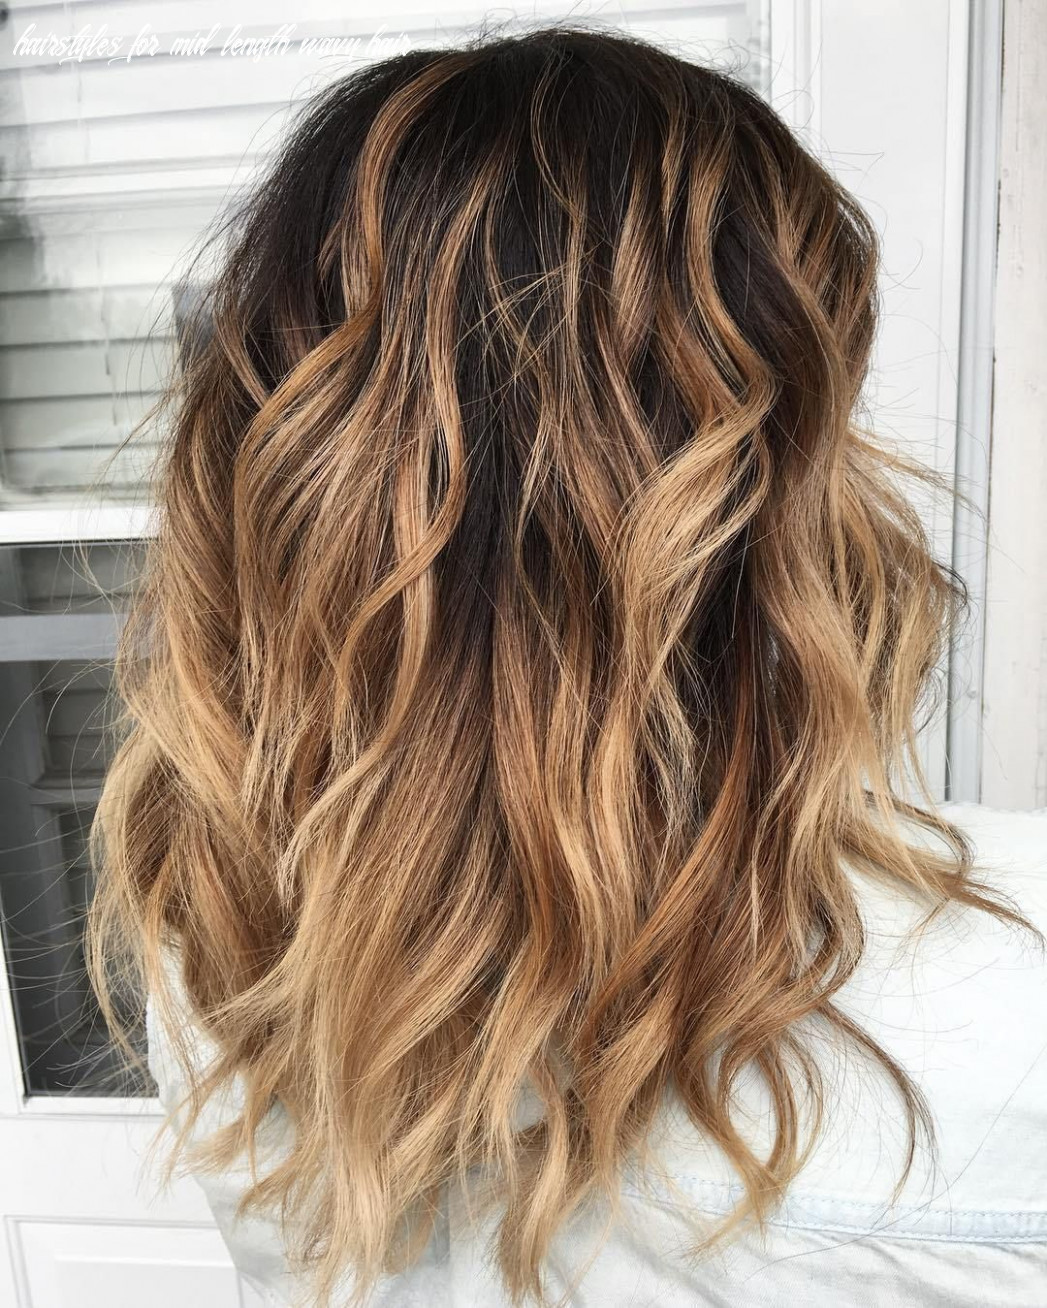 10 Most Magnetizing Hairstyles for Thick Wavy Hair   Thick hair ...